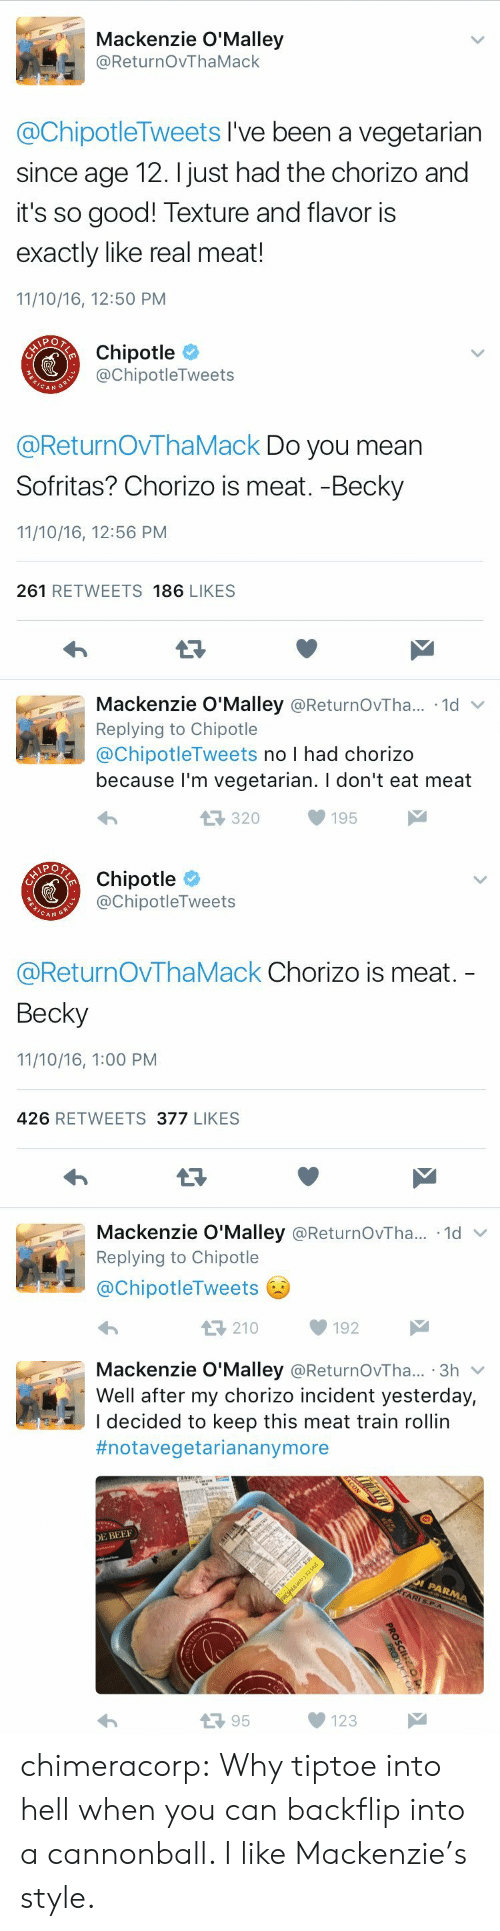 becky: Mackenzie O'Malley  @ReturnOvThaMack  @ChipotleTweets I've been a vegetarian  since age 12. I just had the chorizo and  it's so good! Texture and flavor is  exactly like real meat!  11/10/16, 12:50 PM   Chipotle  @ChipotleTweets  CAN  @ReturnOVThaMack Do you mean  Sofritas? Chorizo is meat. -Becky  11/10/16, 12:56 PM  261 RETWEETS 186 LIKES  Mackenzie O'Malley @ReturnOvTha.. 1d  Replying to Chipotle  @ChipotleTweets no I had chorizo  because l'm vegetarian. I don't eat meat  320195   Chipotle  @ChipotleTweets  CAN G  @ReturnOvThaMack Chorizo is meat.  Becky  11/10/16, 1:00 PM  426 RETWEETS 377 LIKES  Mackenzie O'Malley @ReturnOvTha...-1d ﹀  Replying to Chipotle  @ChipotleTweets  わ  210192   Mackenzie O'Malley @ReturnOvTha... 3h v  Well after my chorizo incident yesterday,  I decided to keep this meat train rollin  #notavegetariananymore  E BEE  13 95  123 chimeracorp: Why tiptoe into hell when you can backflip into a cannonball. I like Mackenzie's style.